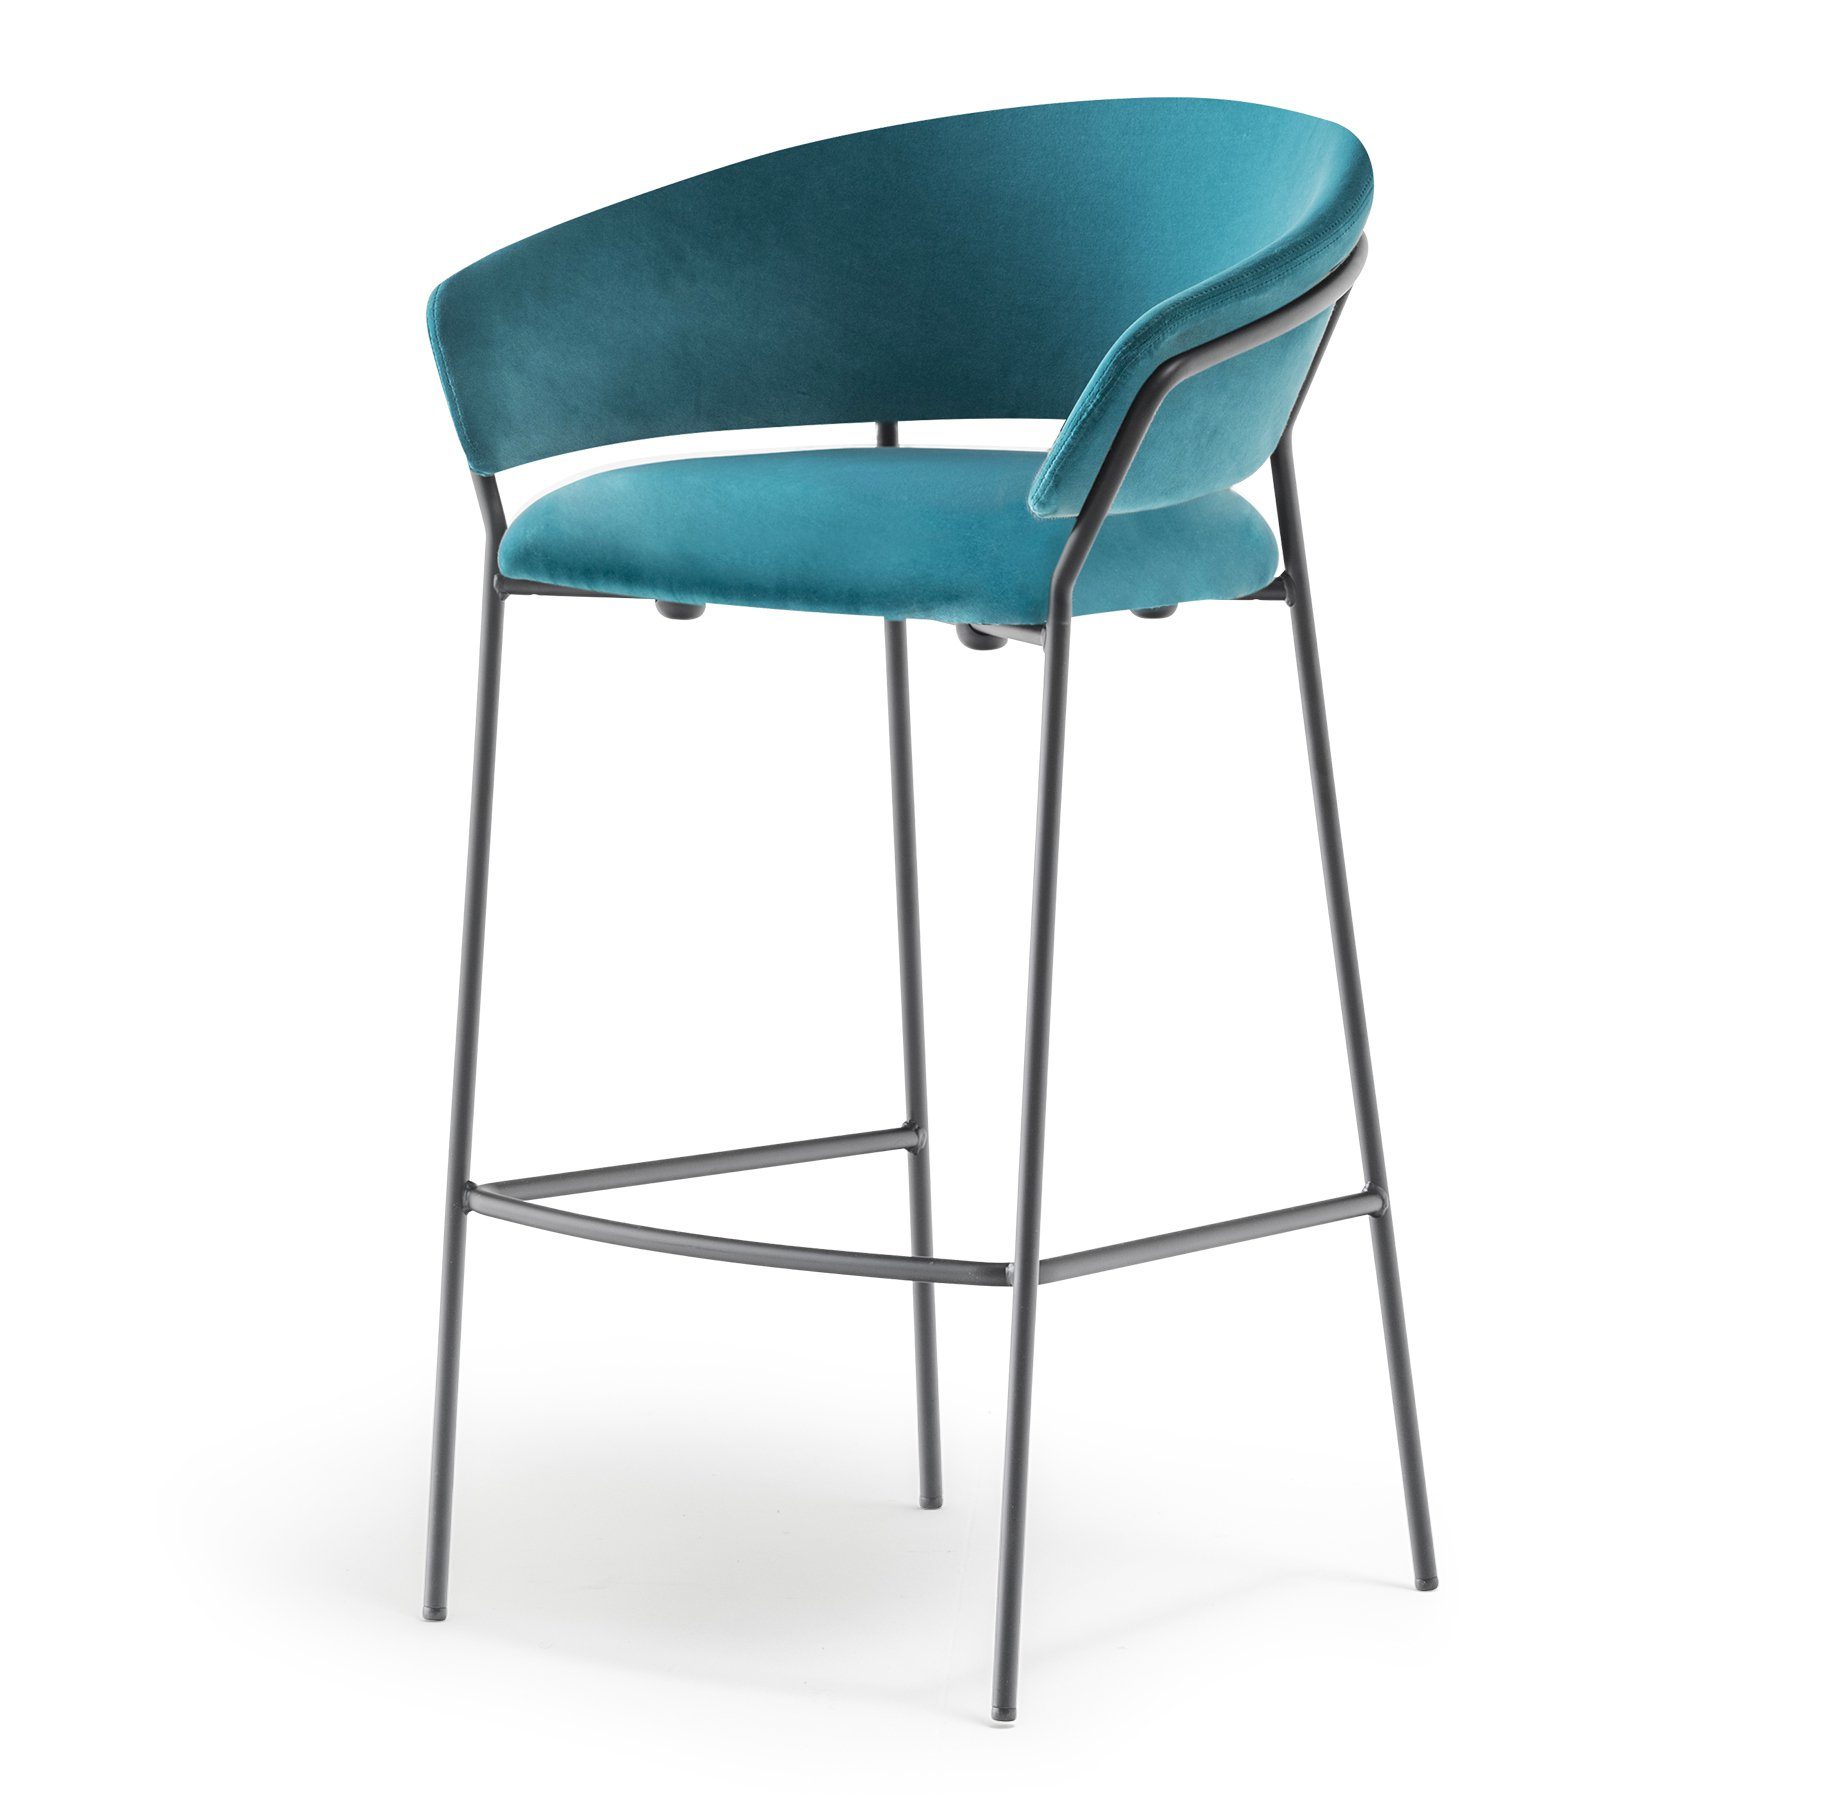 Jazz Stool from Pedrali, designed by Pedrali R&D